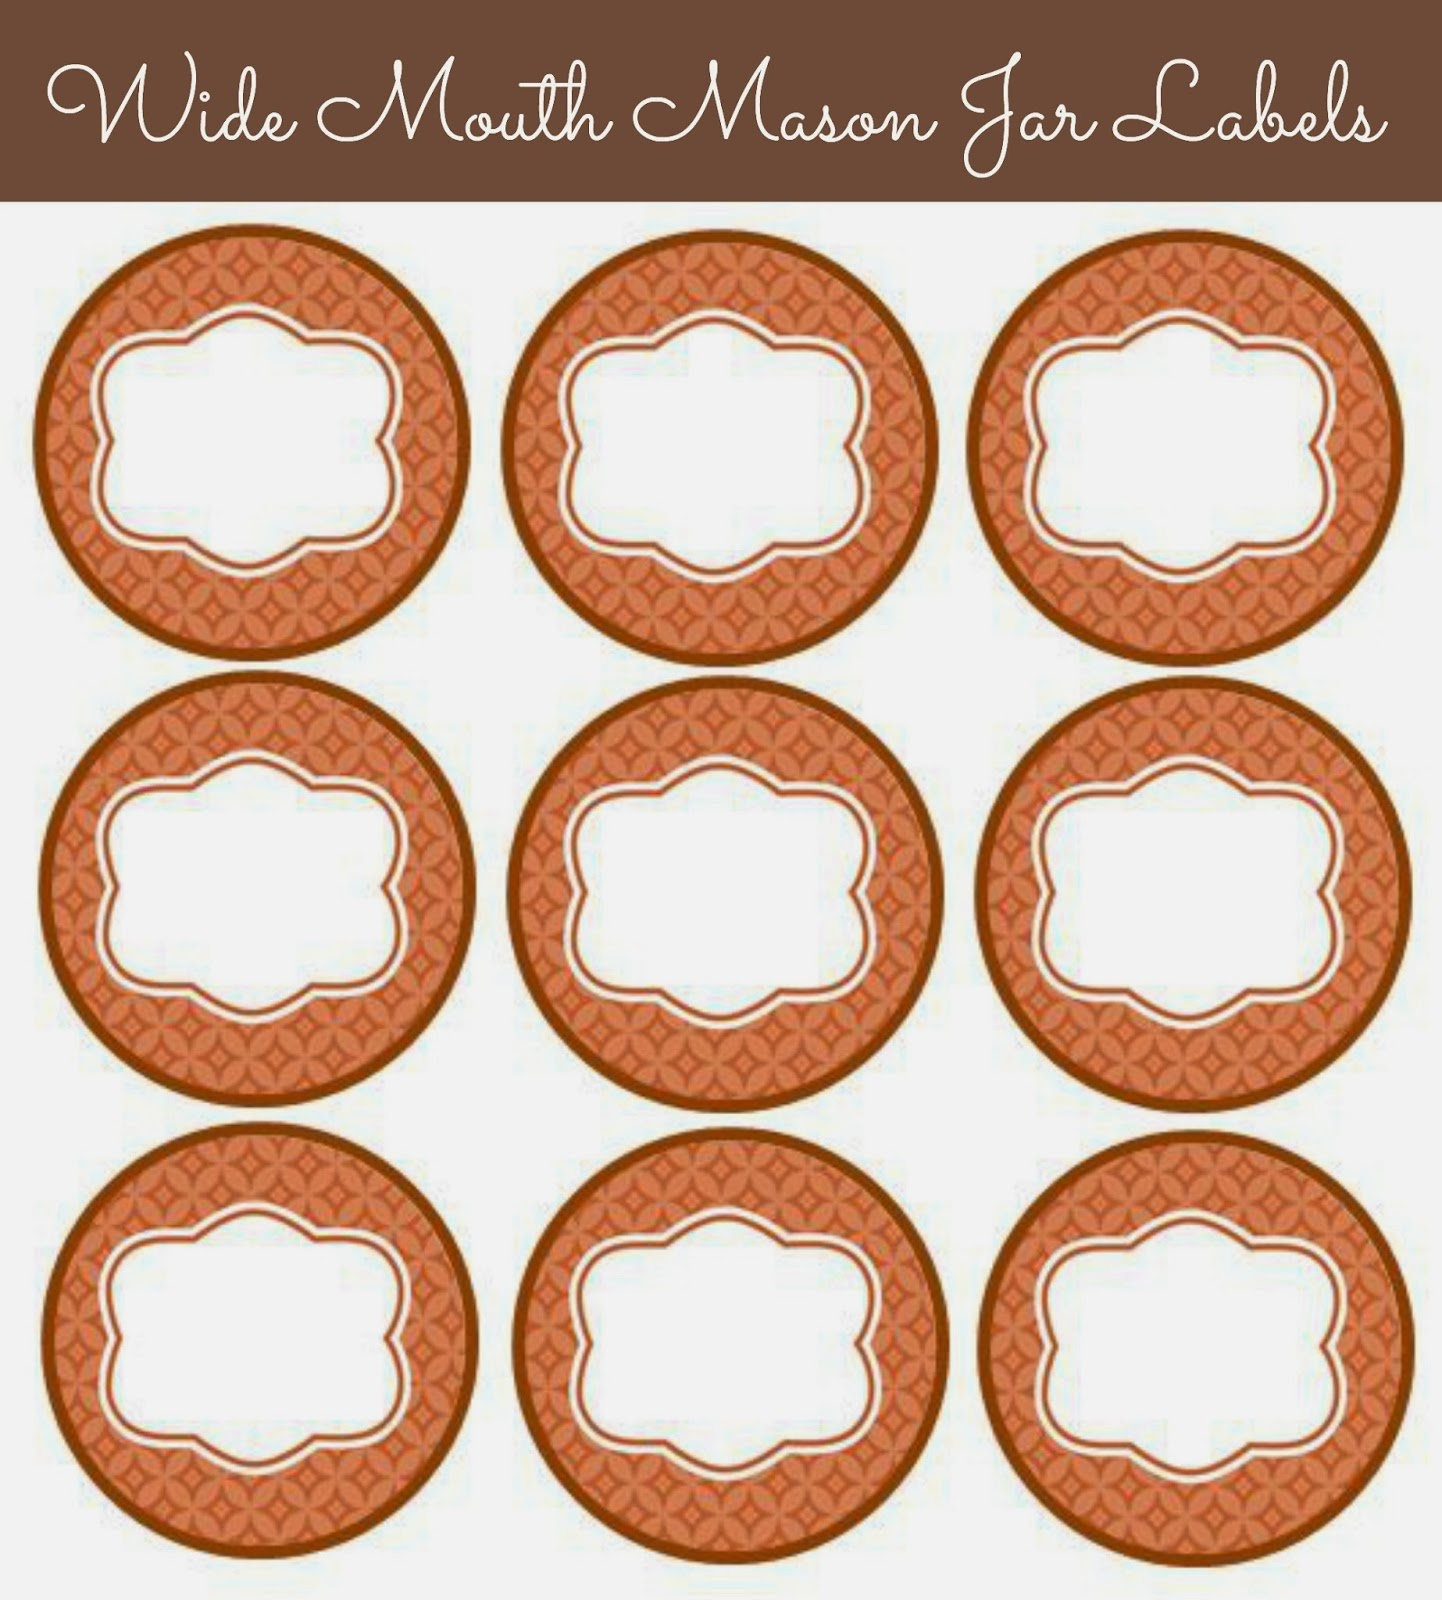 56 Cute Mason Jar Labels | Kittybabylove - Free Printable Labels For Jars